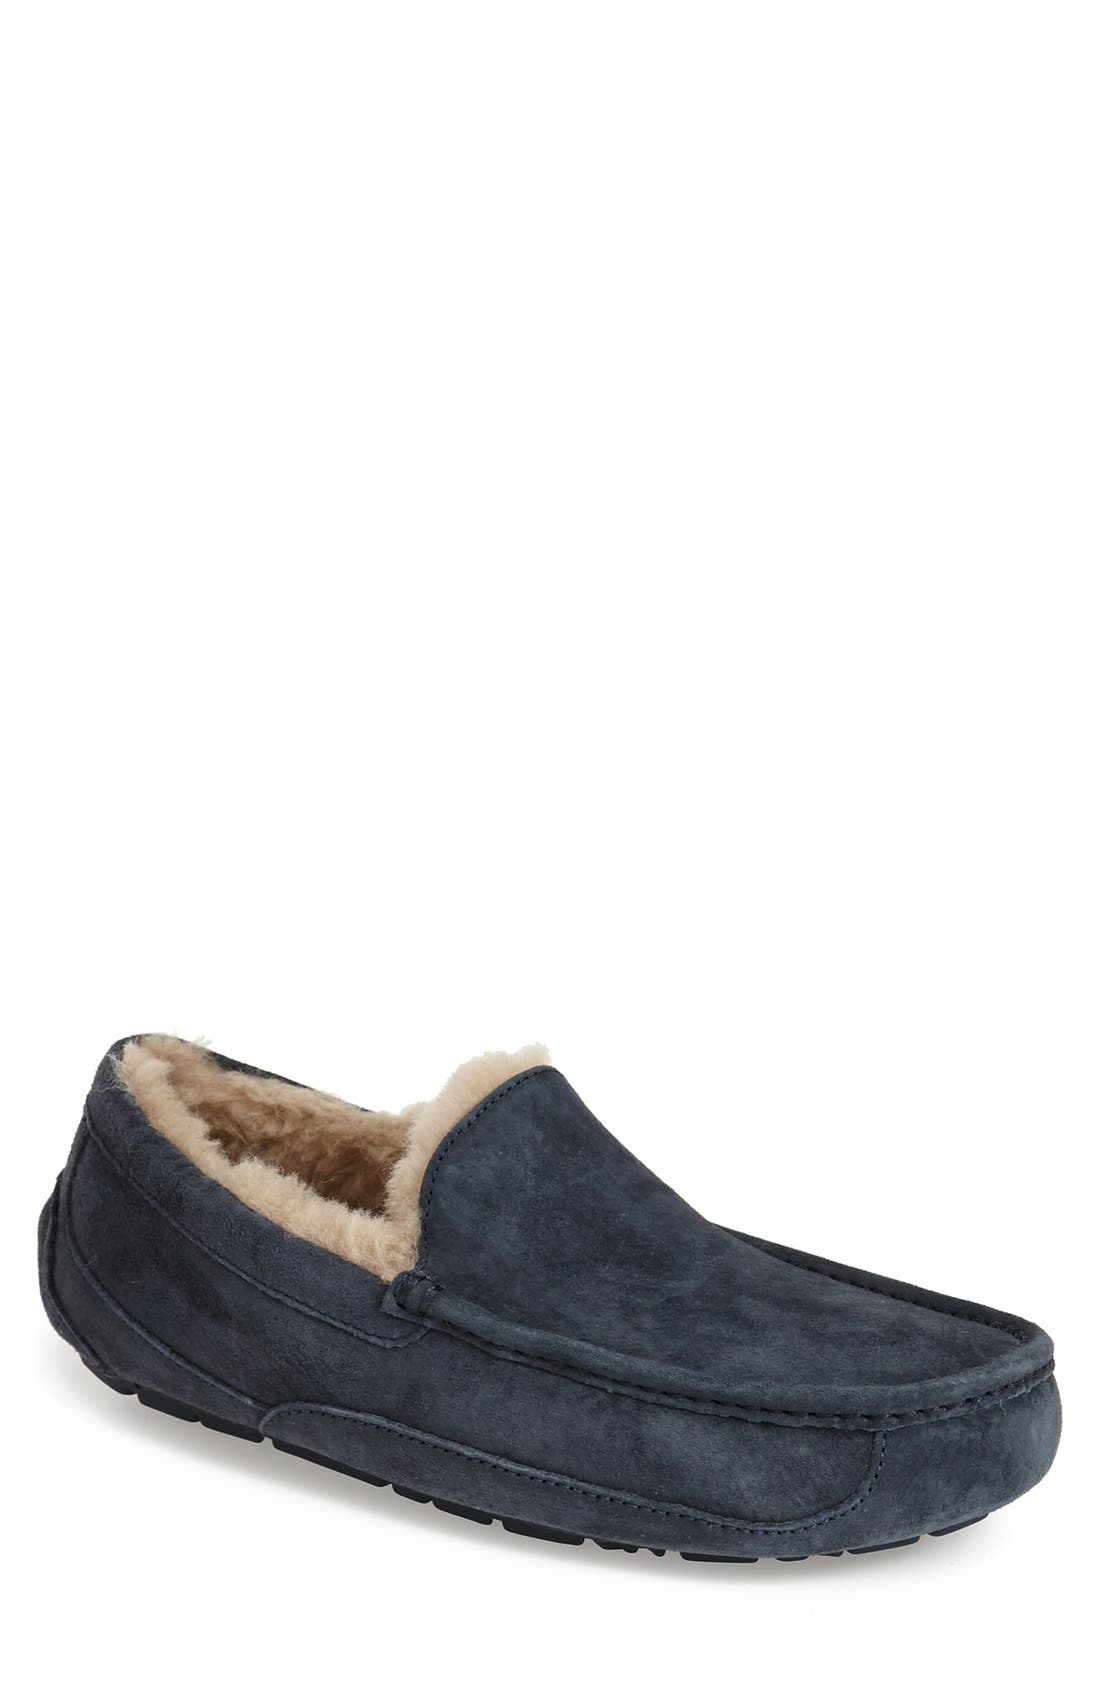 Carries New Mens Casual Shoes - UGG Fascot Black